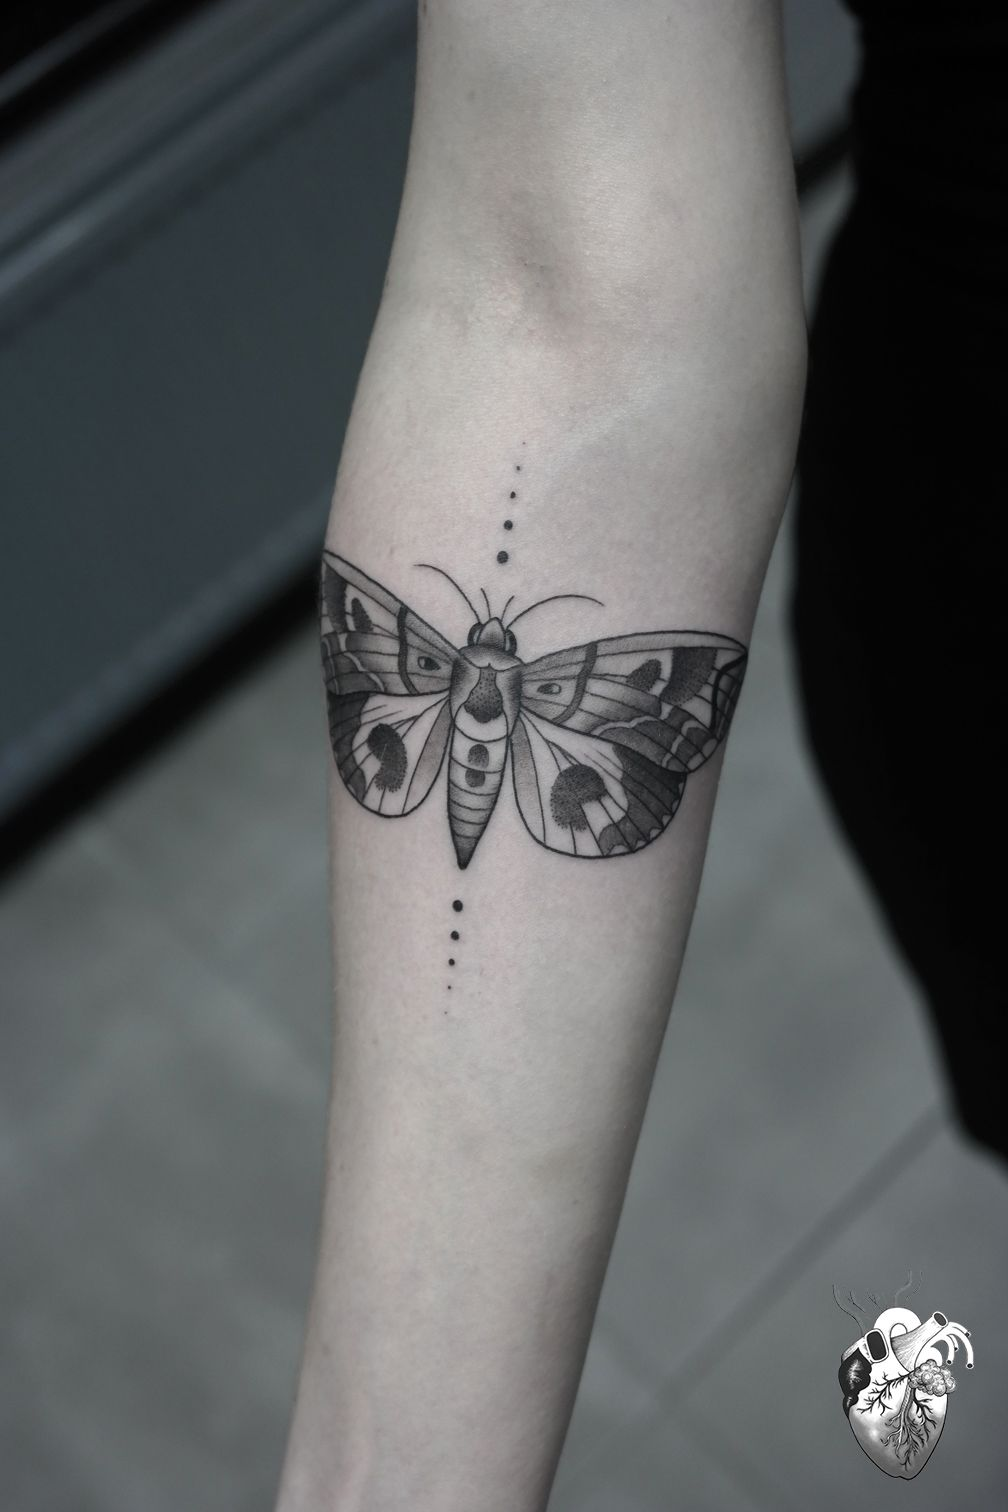 Geometric Moth Tattoo Google Search Motten Tattoo Tattoo Ideen Tatowierungen